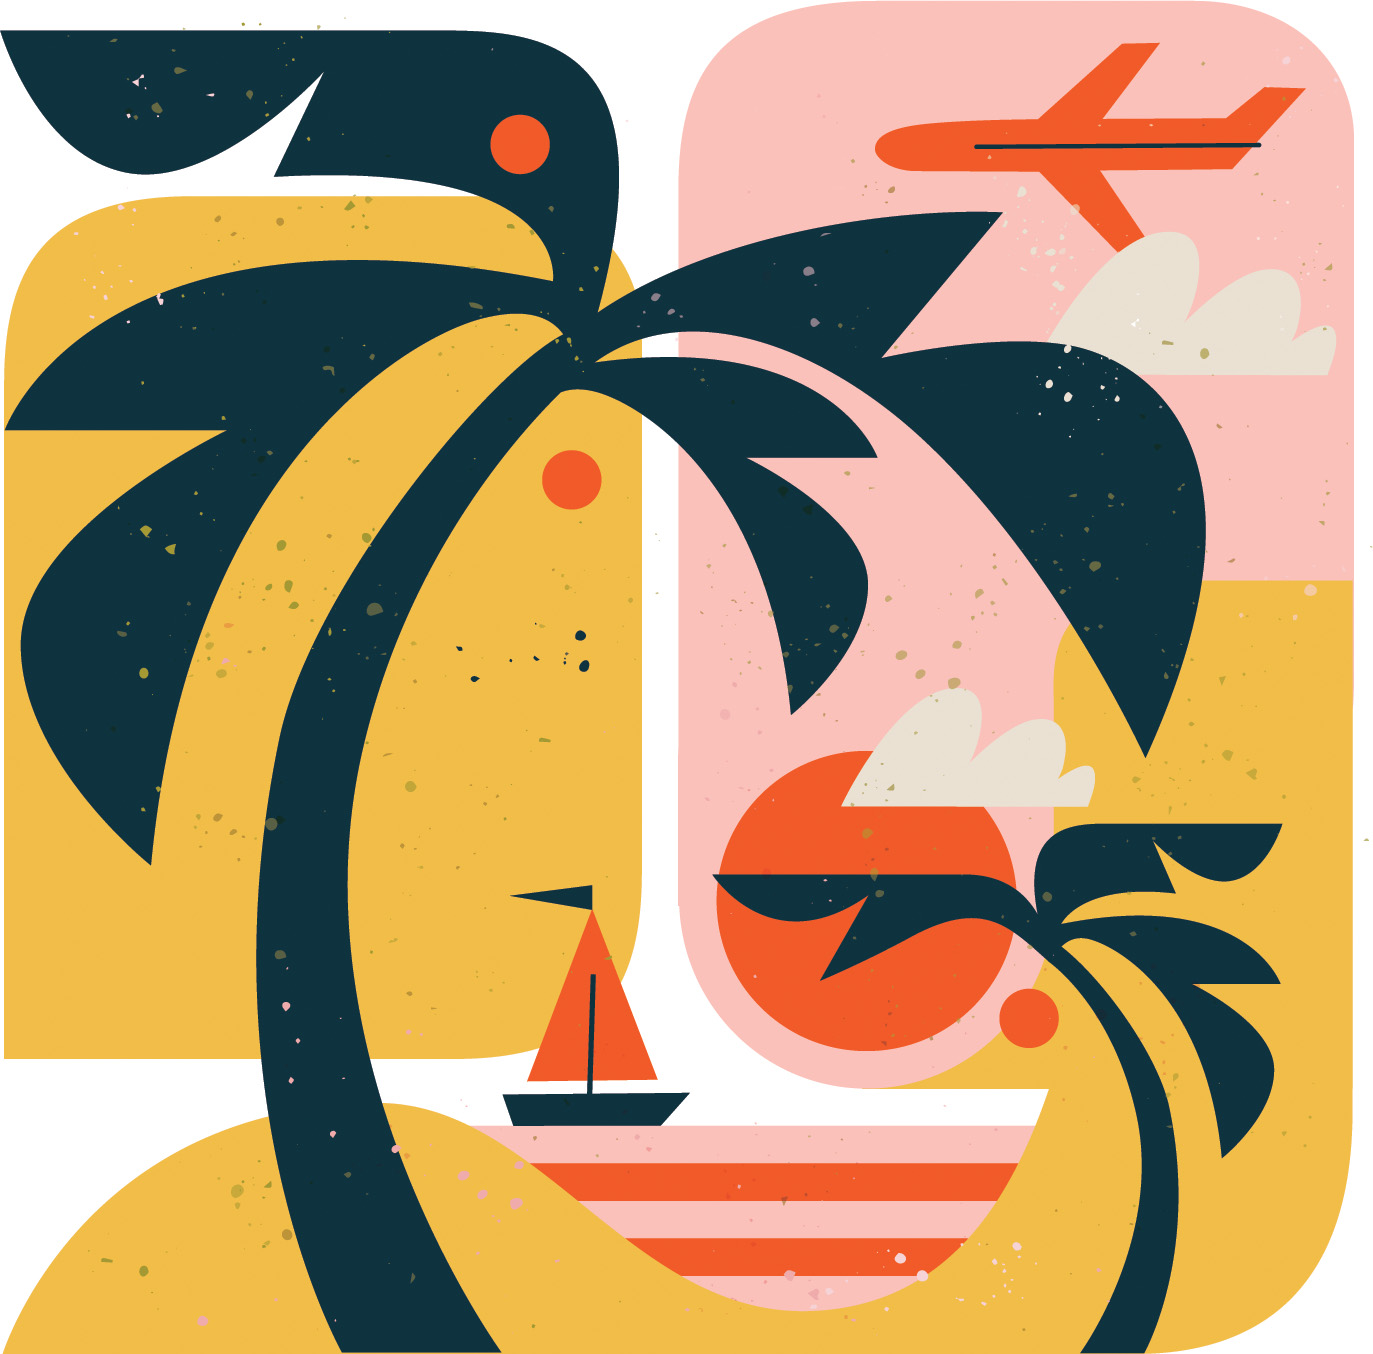 Spot illustration. Image of a sailboat seen from a beach with palm trees.